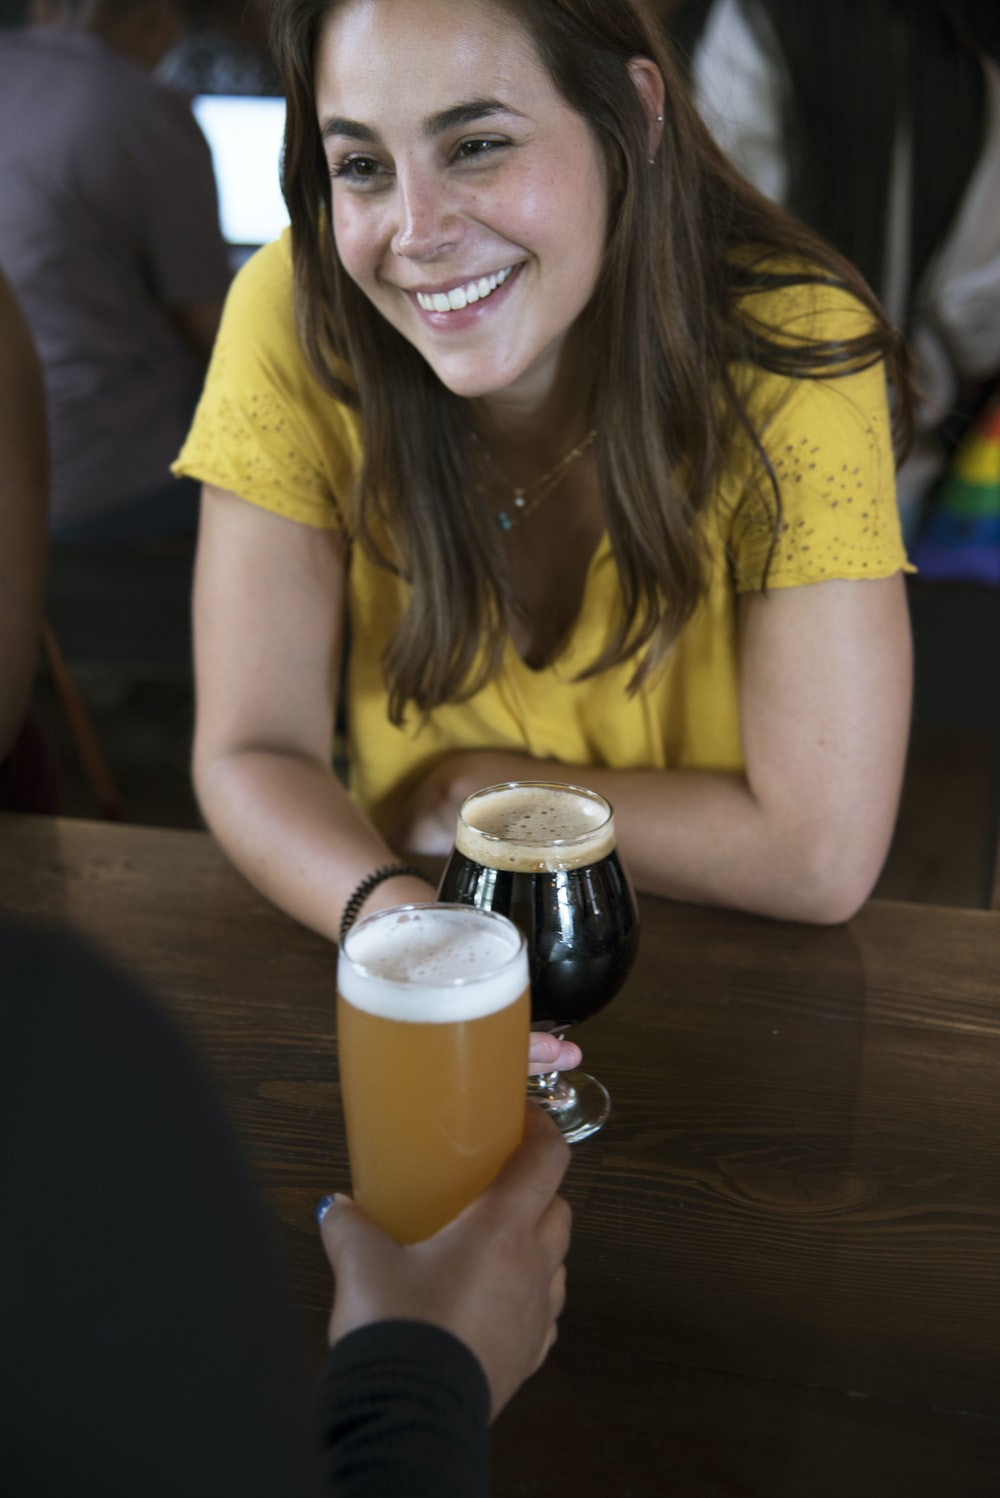 smiling woman in front of table